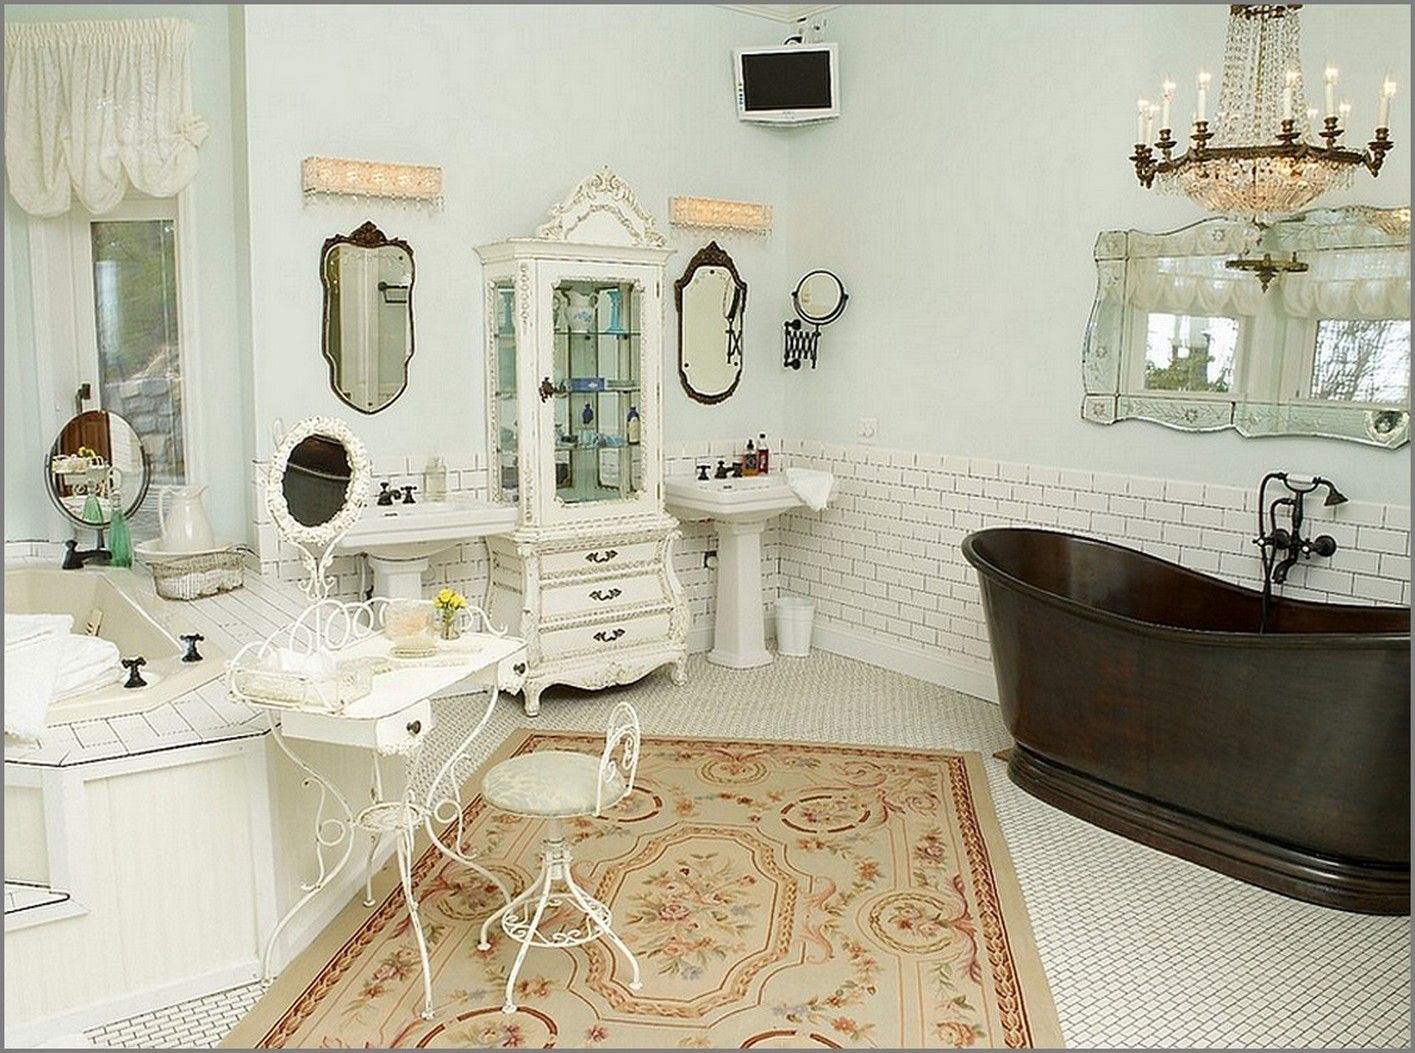 Shabby Chic Interior Design Style. bathroom could combine rug, metal and wooden furniture elements